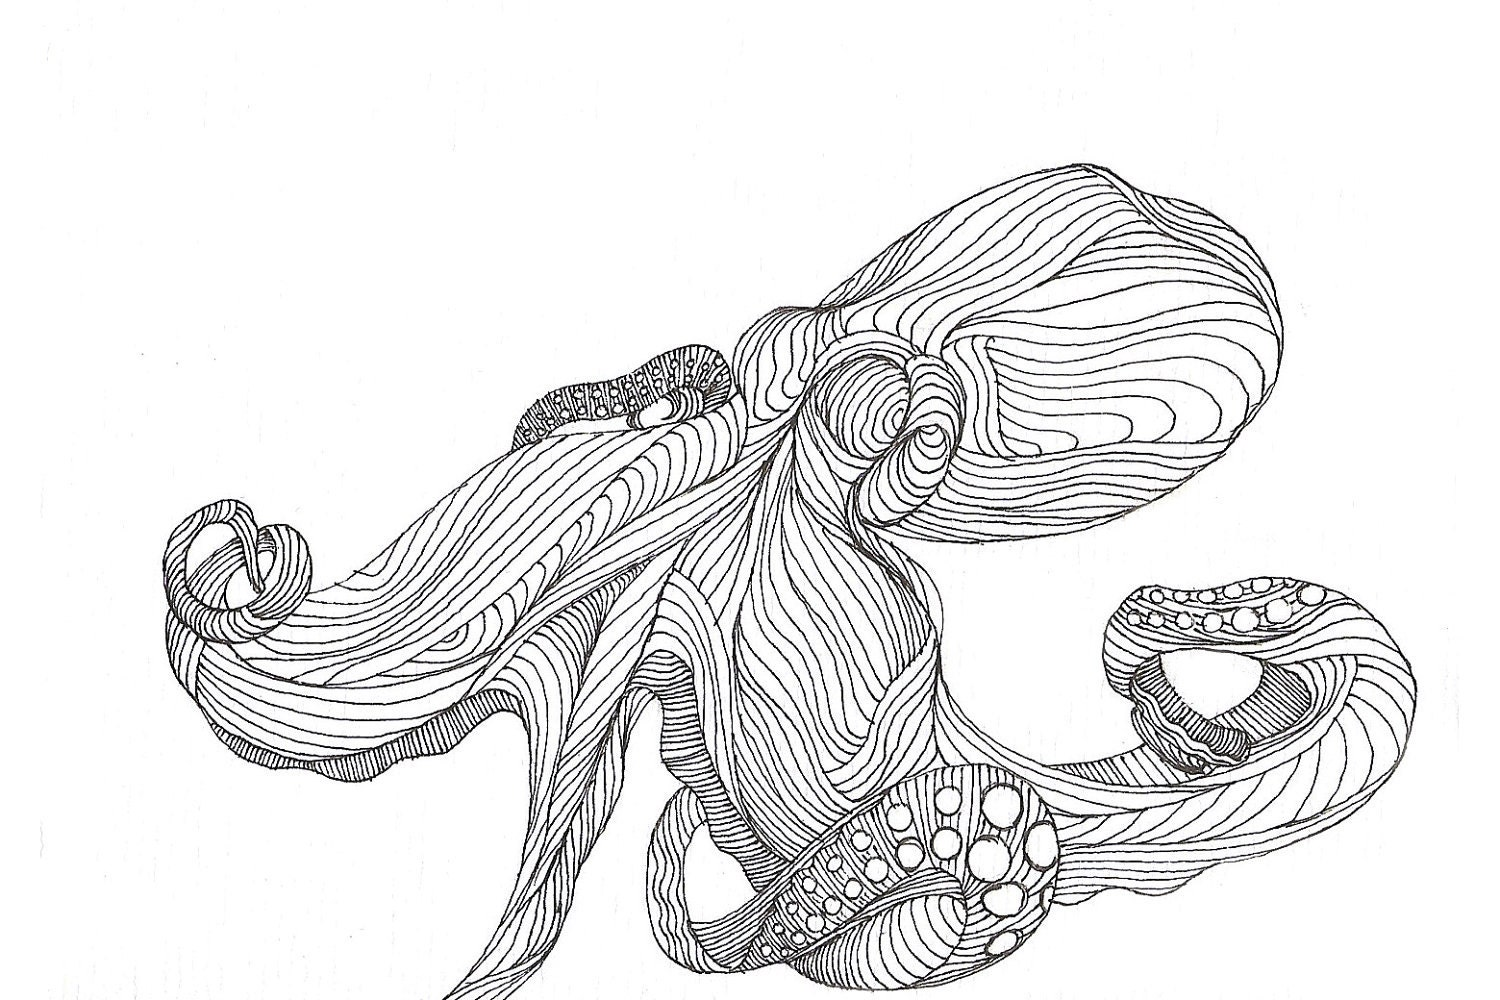 Octopus Drawings Black And White Octopus drawing - in